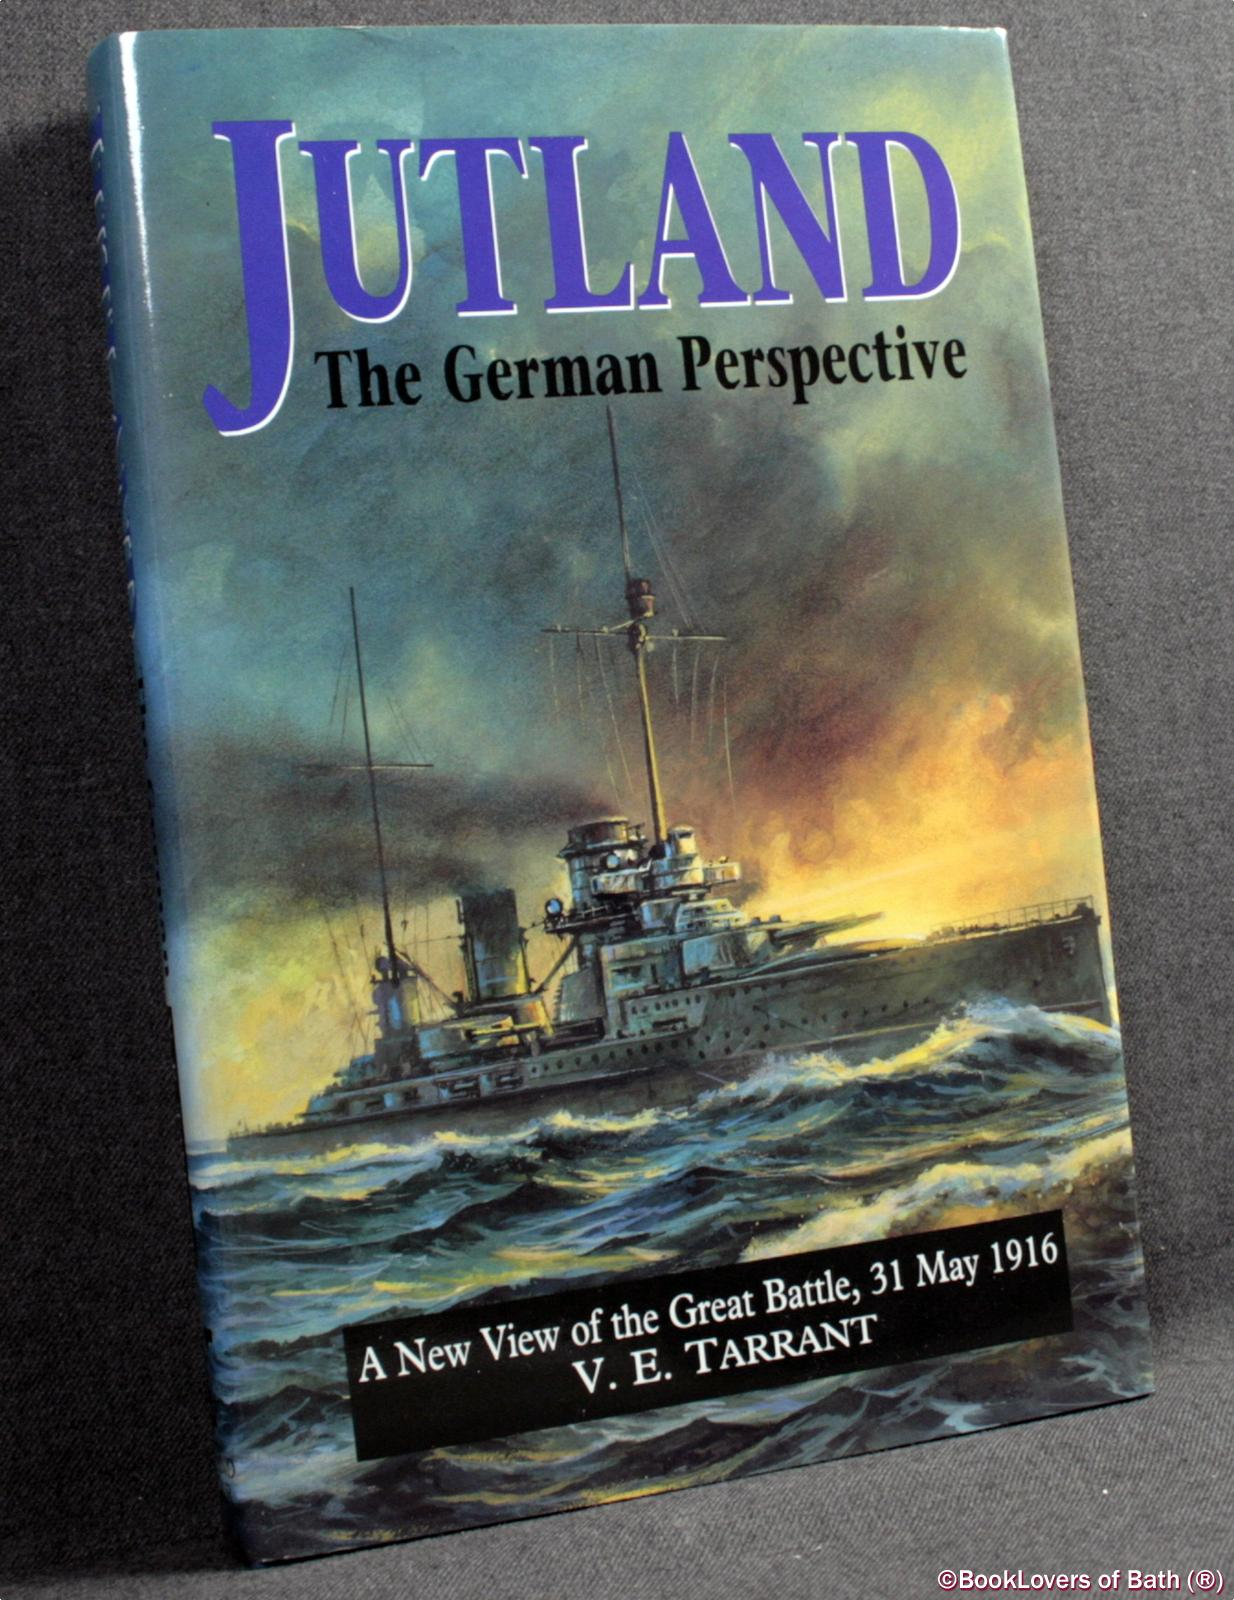 Jutland: The German Perspective: A New View of the Great Battle, 31 May 1916 - V. E. Tarrant